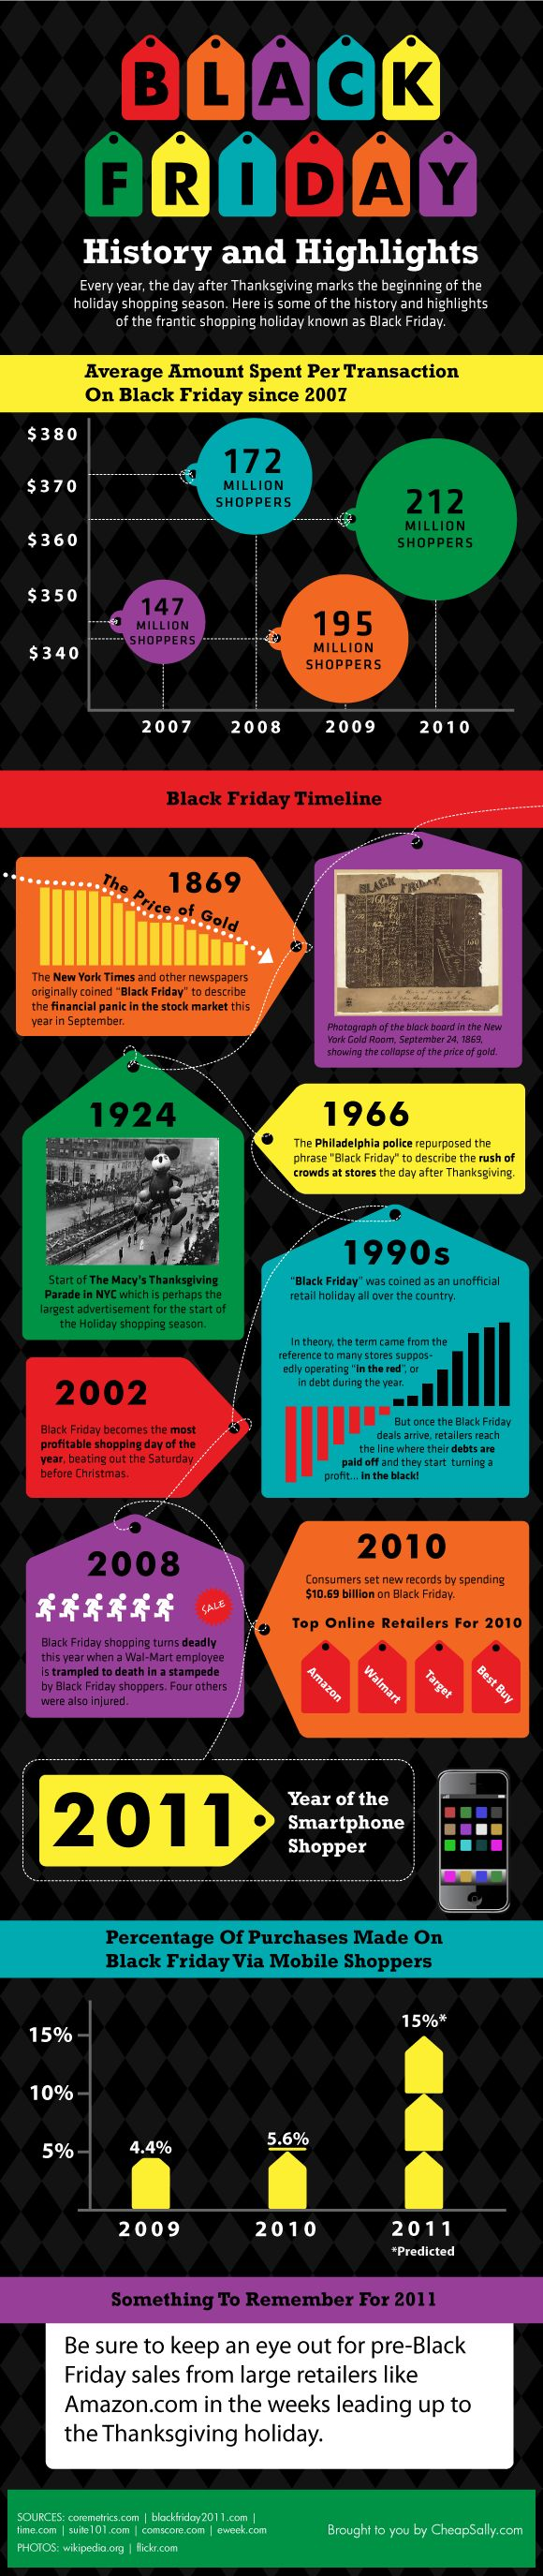 Black Friday History and Highlights infographic  --  found at http://infographiclist.com/ 2011/11/21/black-friday-history-and-highlights-infographic/